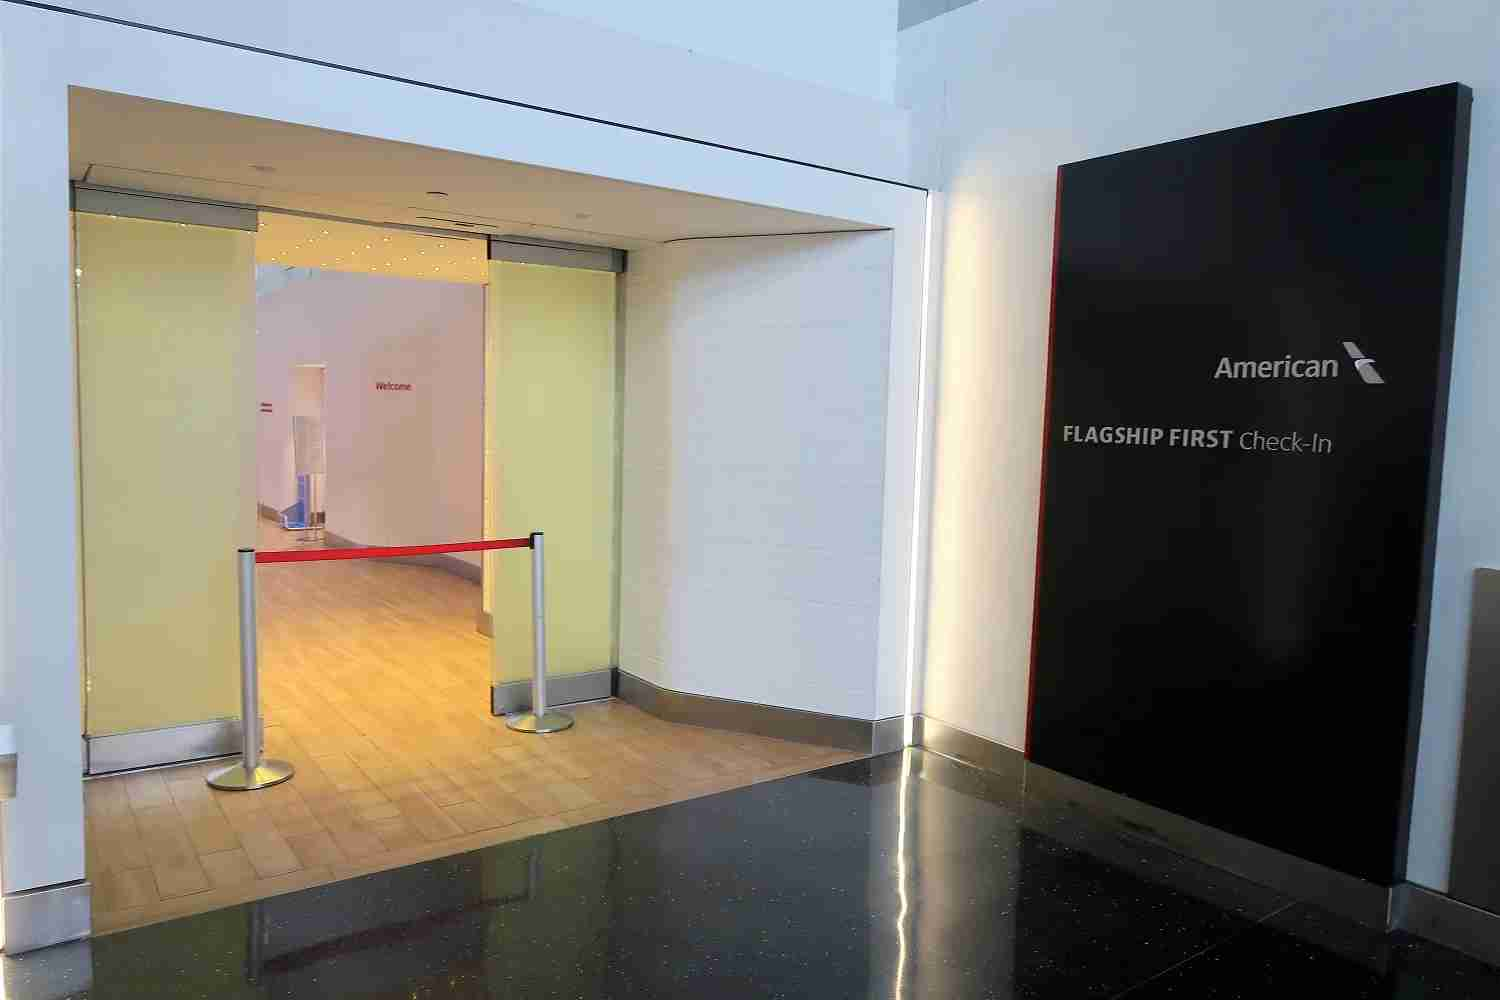 Photo of the New York JFK Flagship First Check-In by JT Genter / TPG.